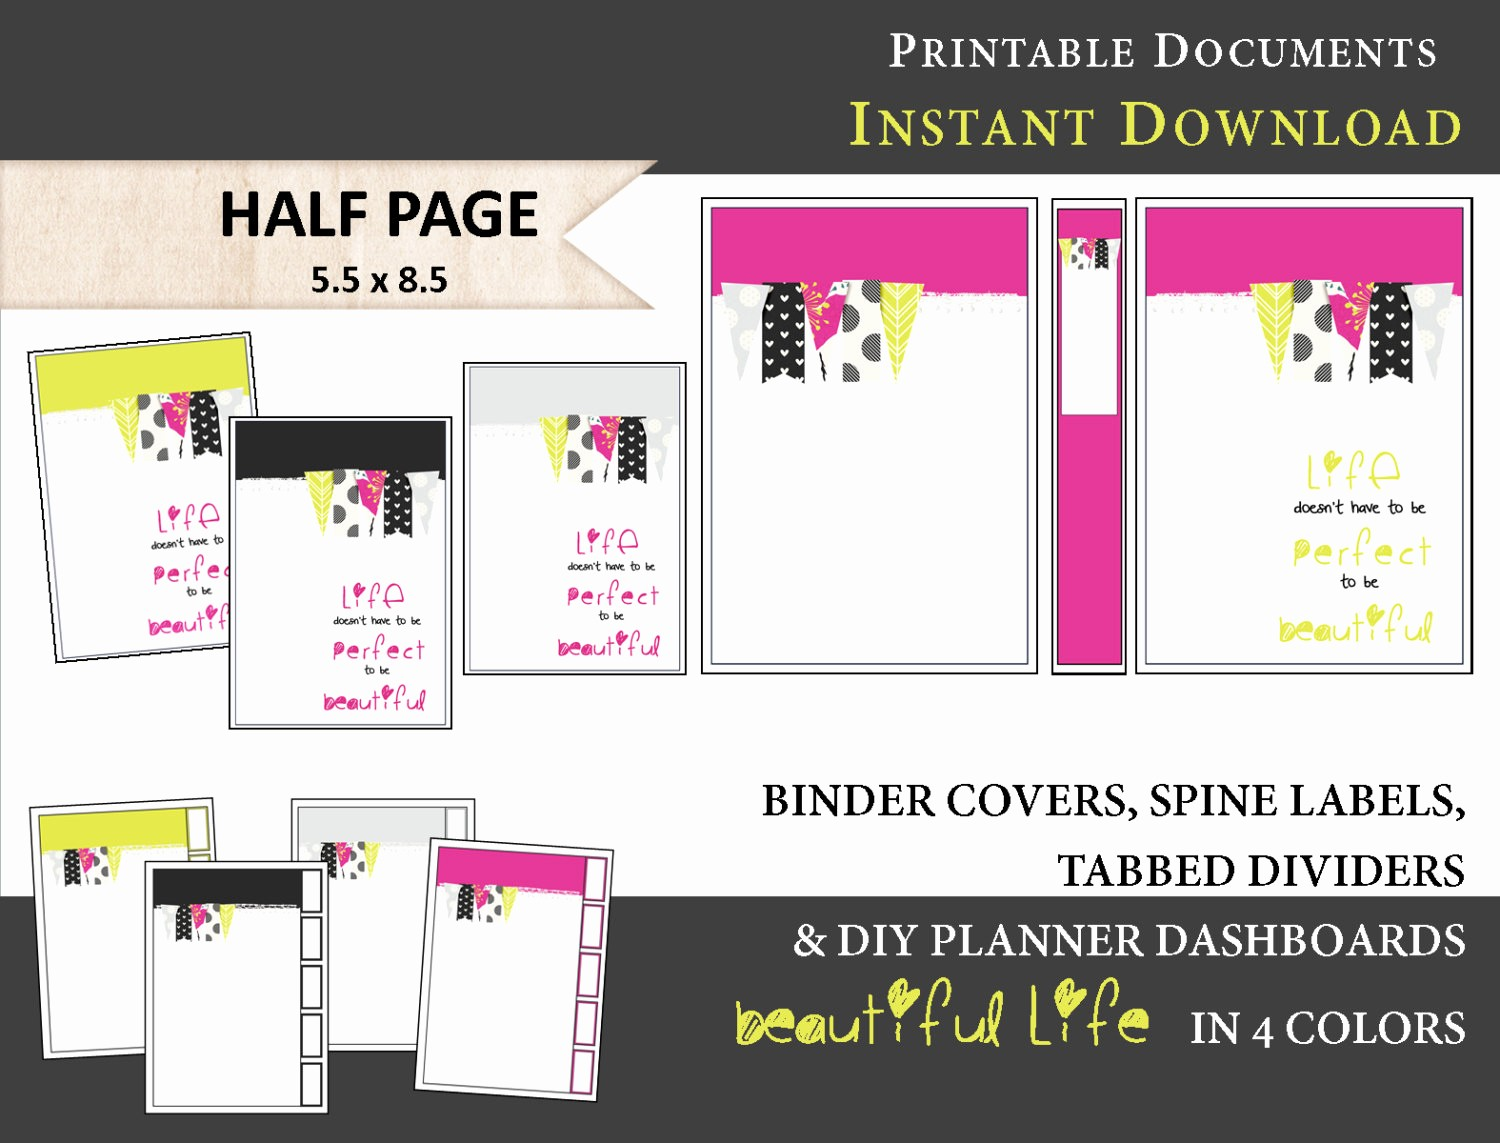 Free Printable Binder Spine Labels New Printable Binder Covers Spine Label Inserts by